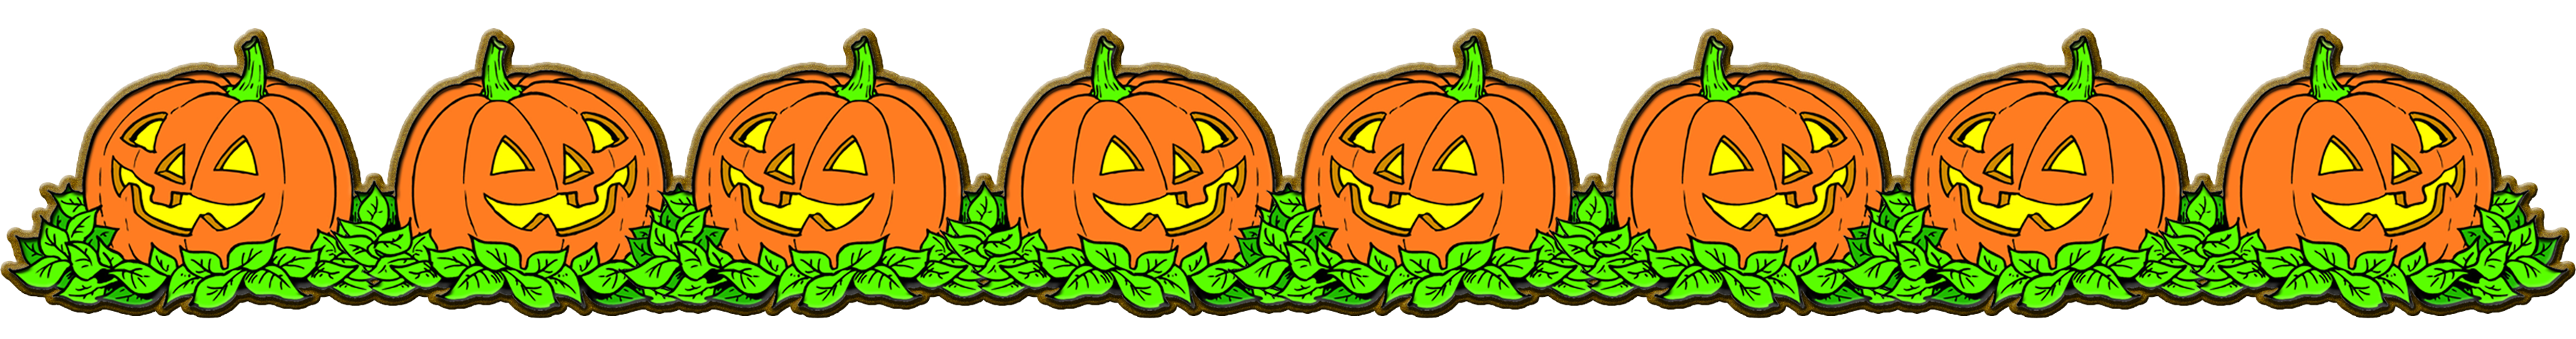 Pumpkins border png. Collection of halloween